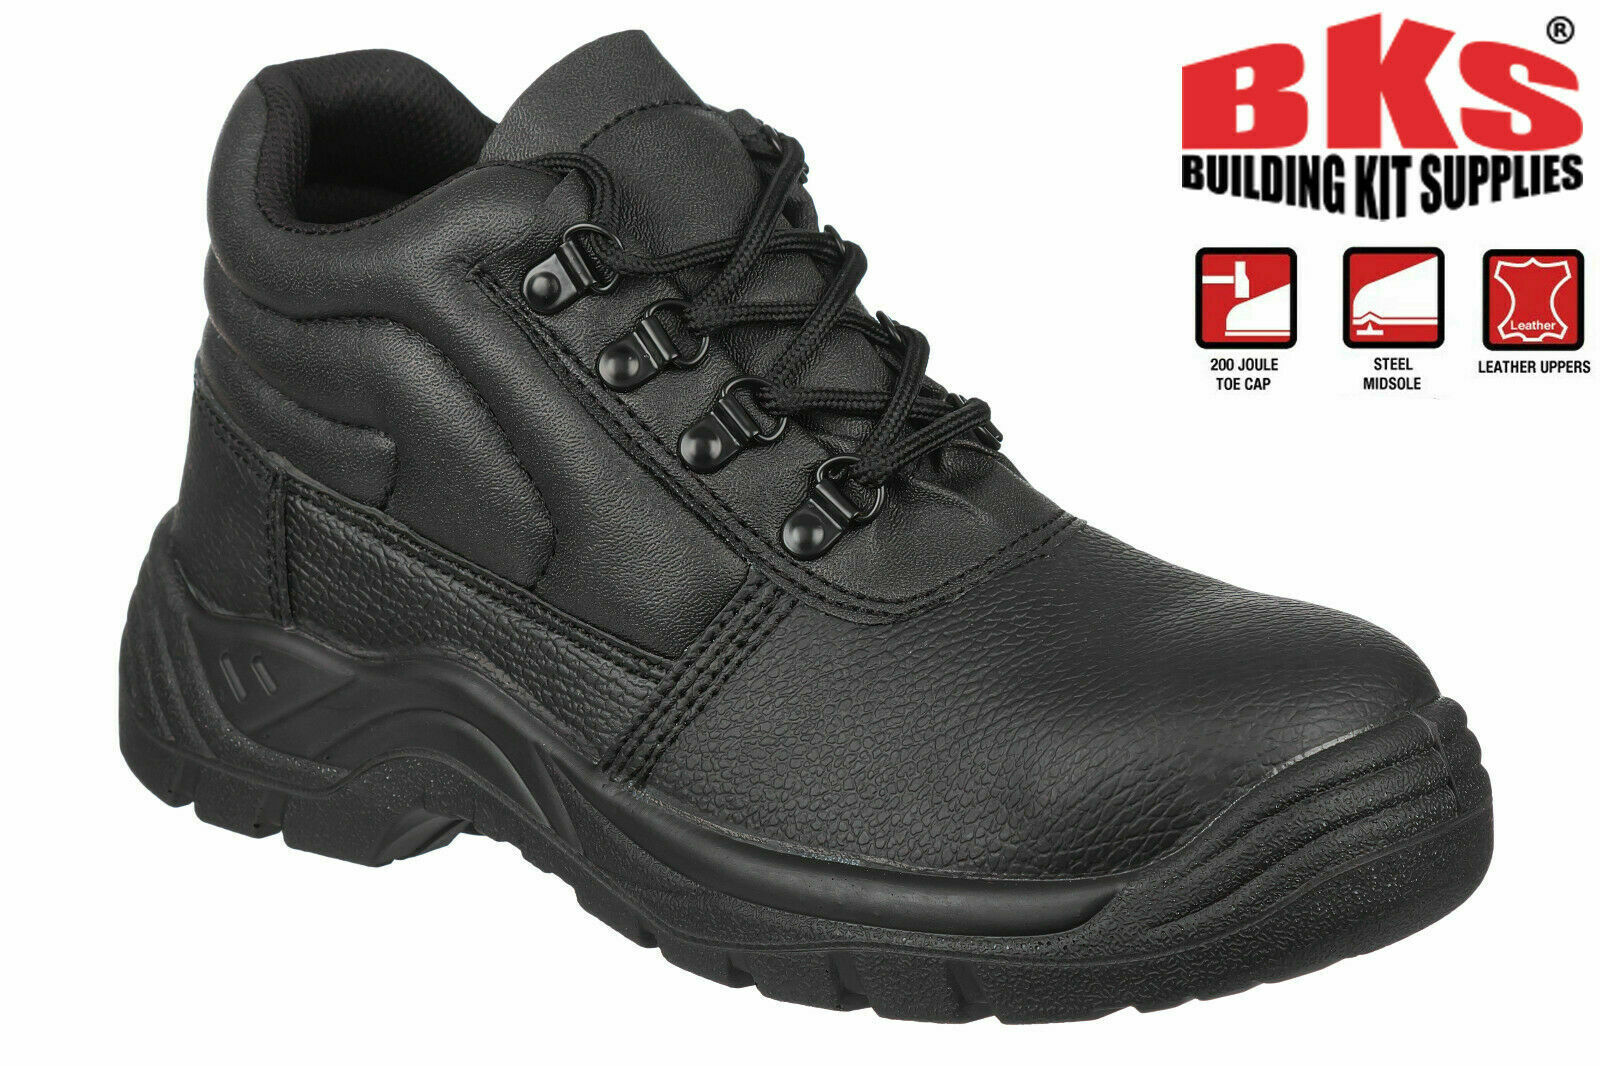 Mens Safety Work Boots with Steel Toe